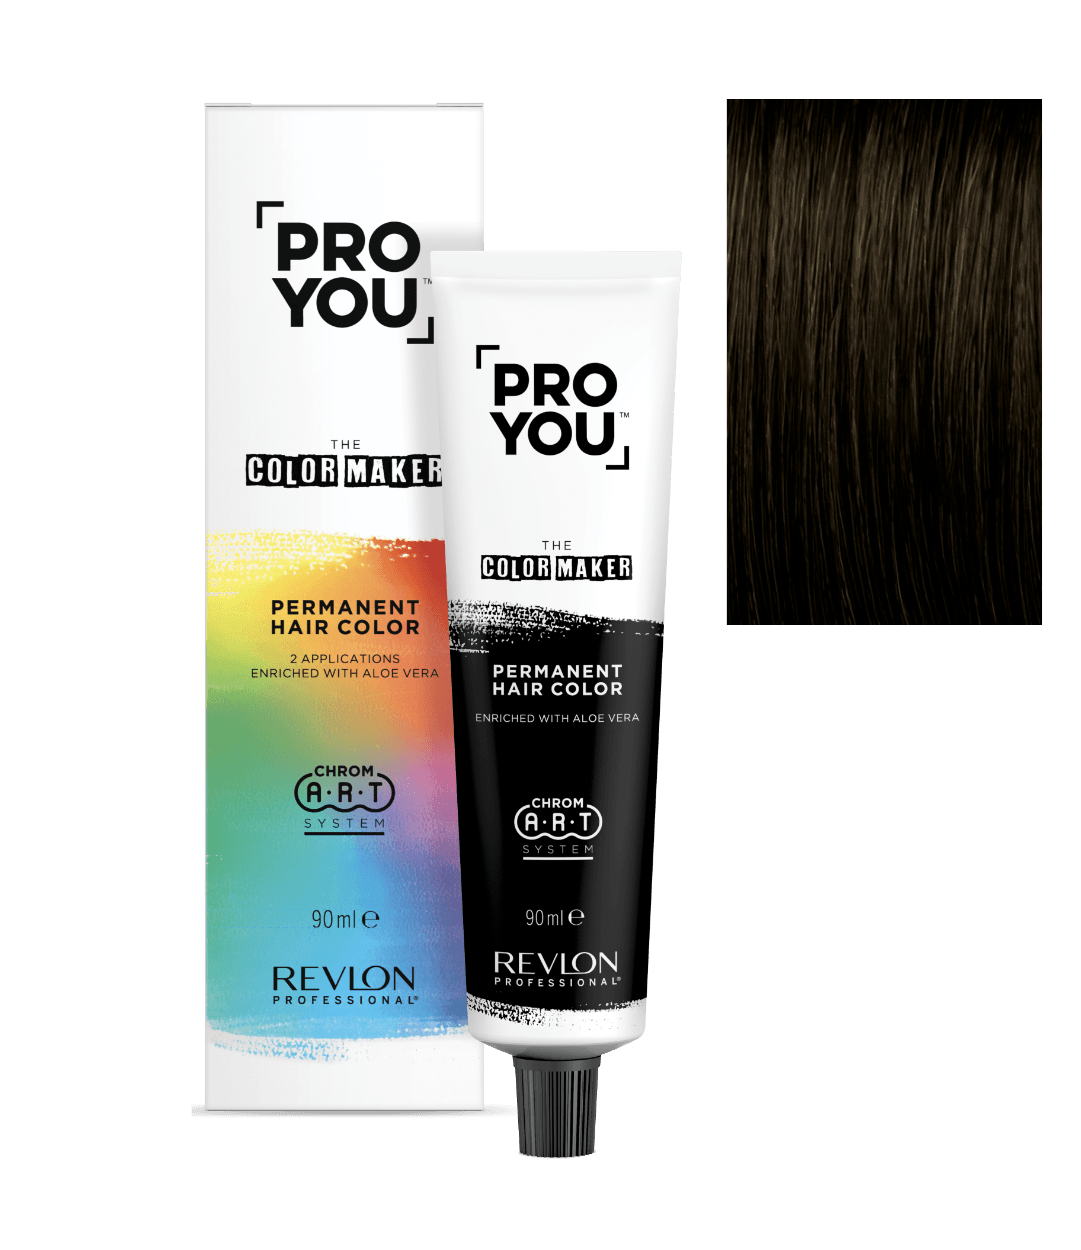 revlon professional ProYou Color Maker 4.0 | Duo Cosmetics